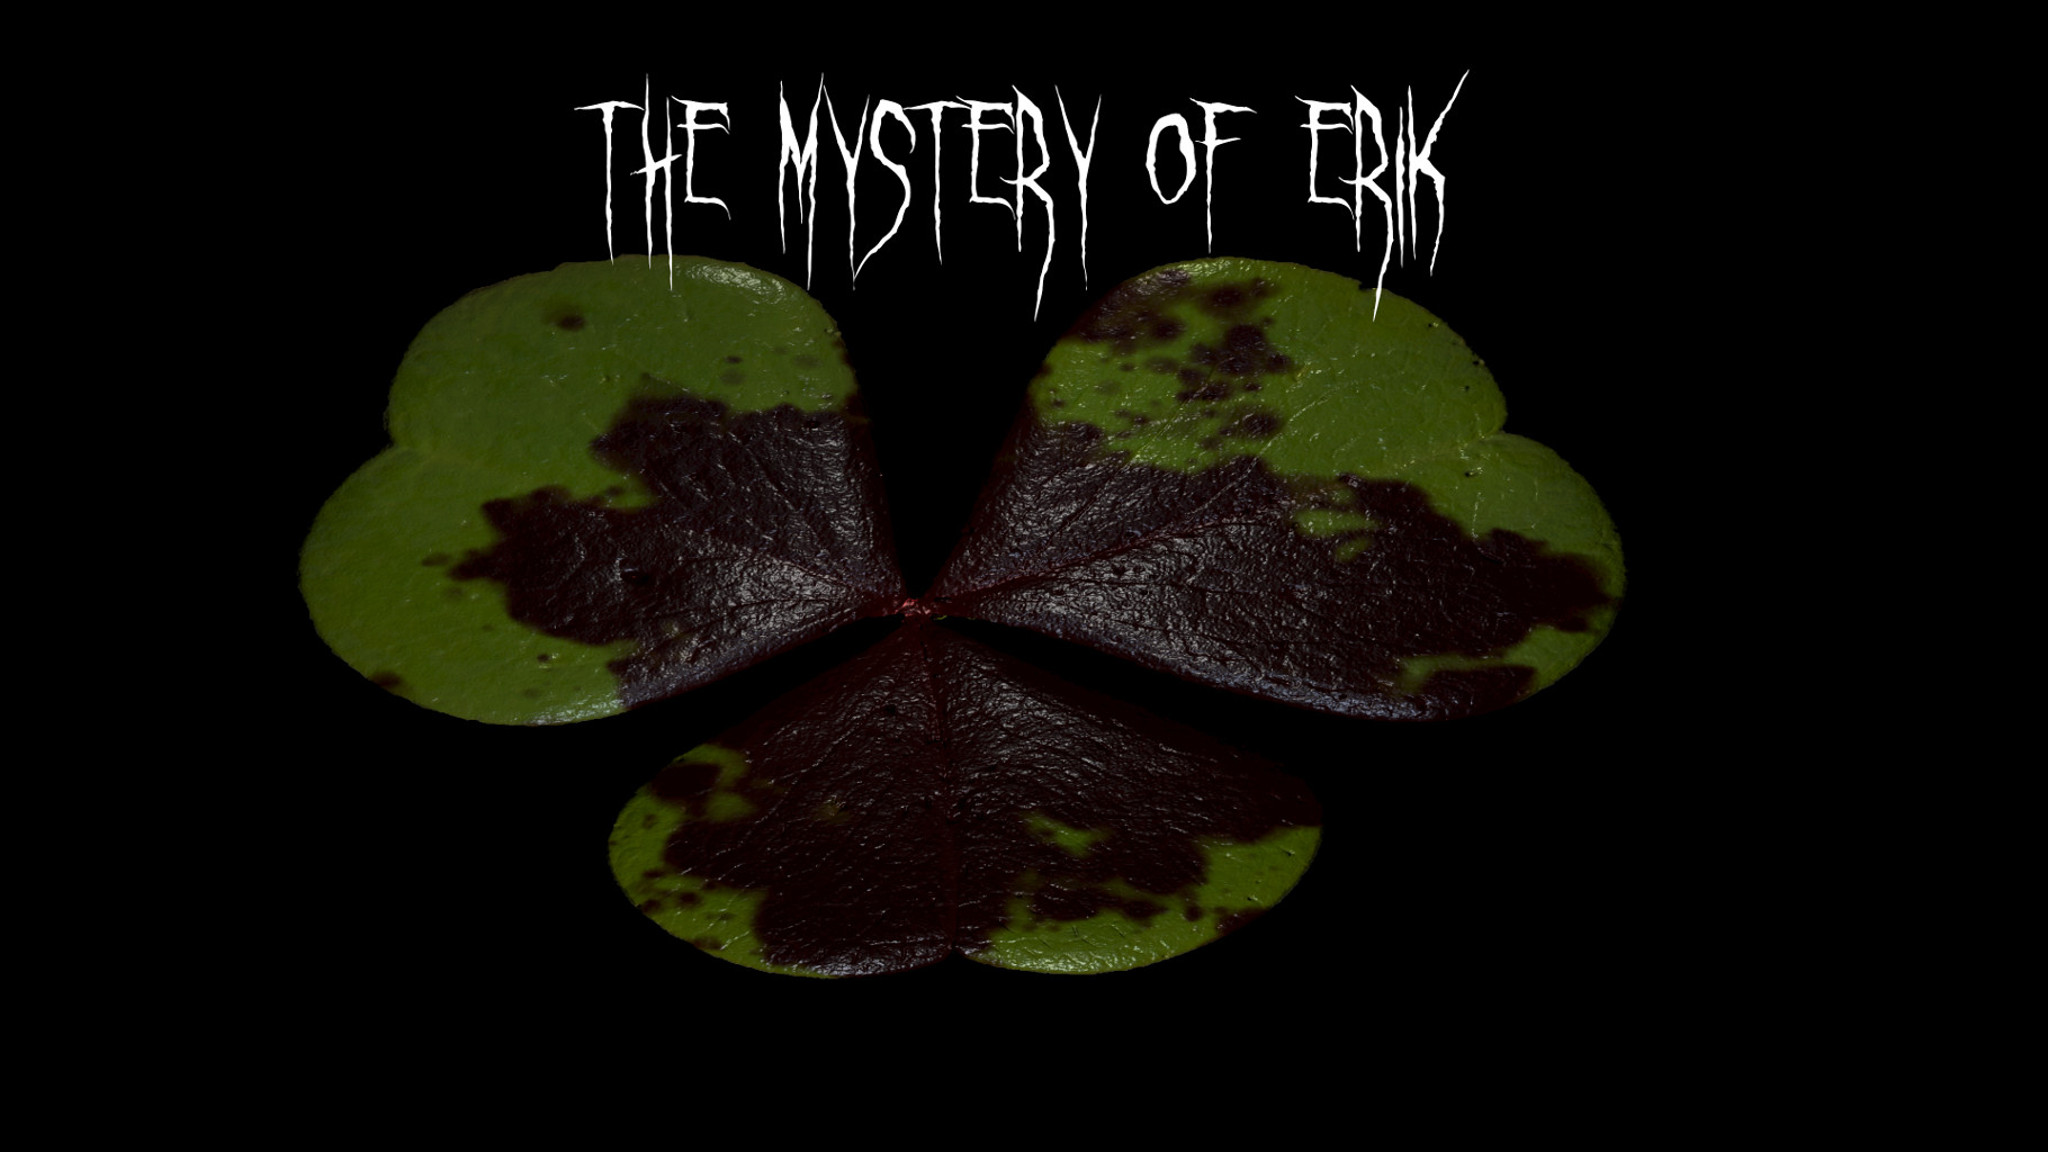 The Mystery Of Erik